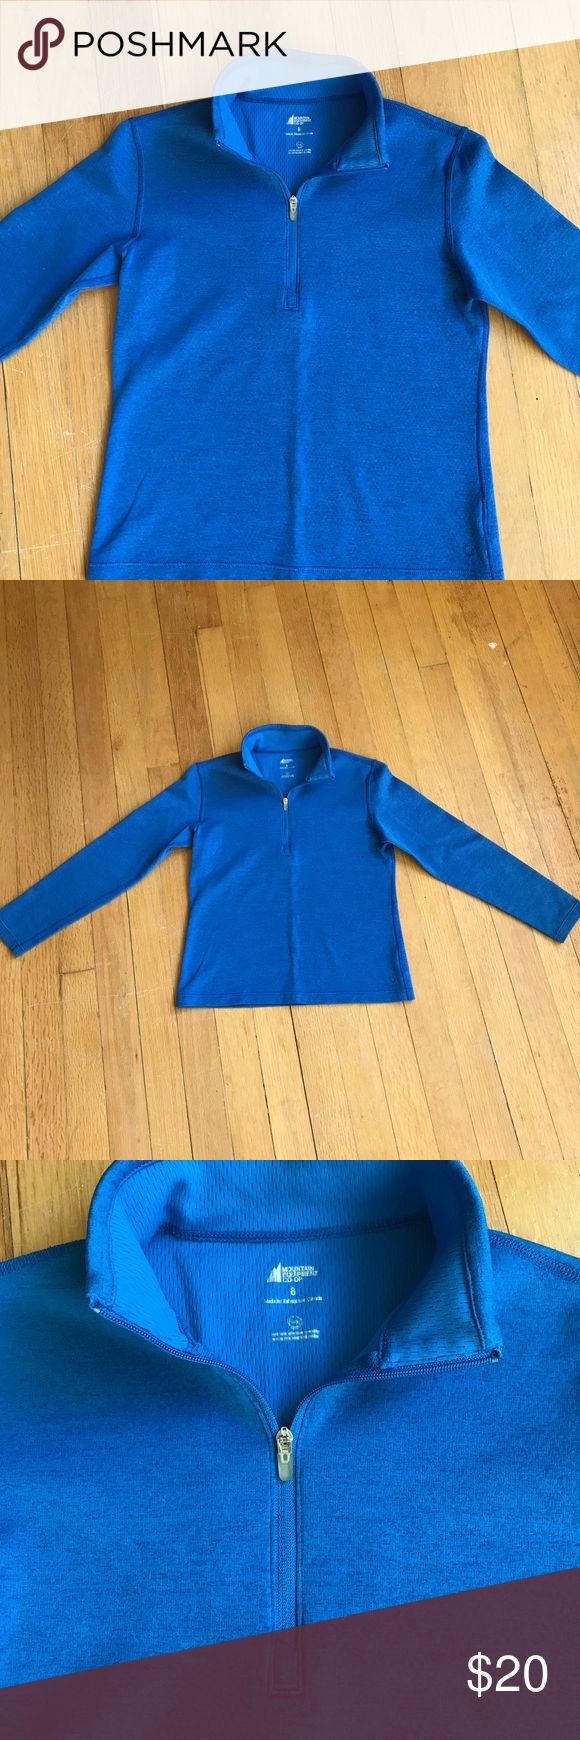 Kids Mountain Equipment Co-op long-sleeved shirt Zip-neck pullover. 100% recycled polyester shirt. Great for layering on cooler days. In excellent condition. Comes from a smoke-free, pet-free home. Mountain Equipment Co-op Shirts & Tops